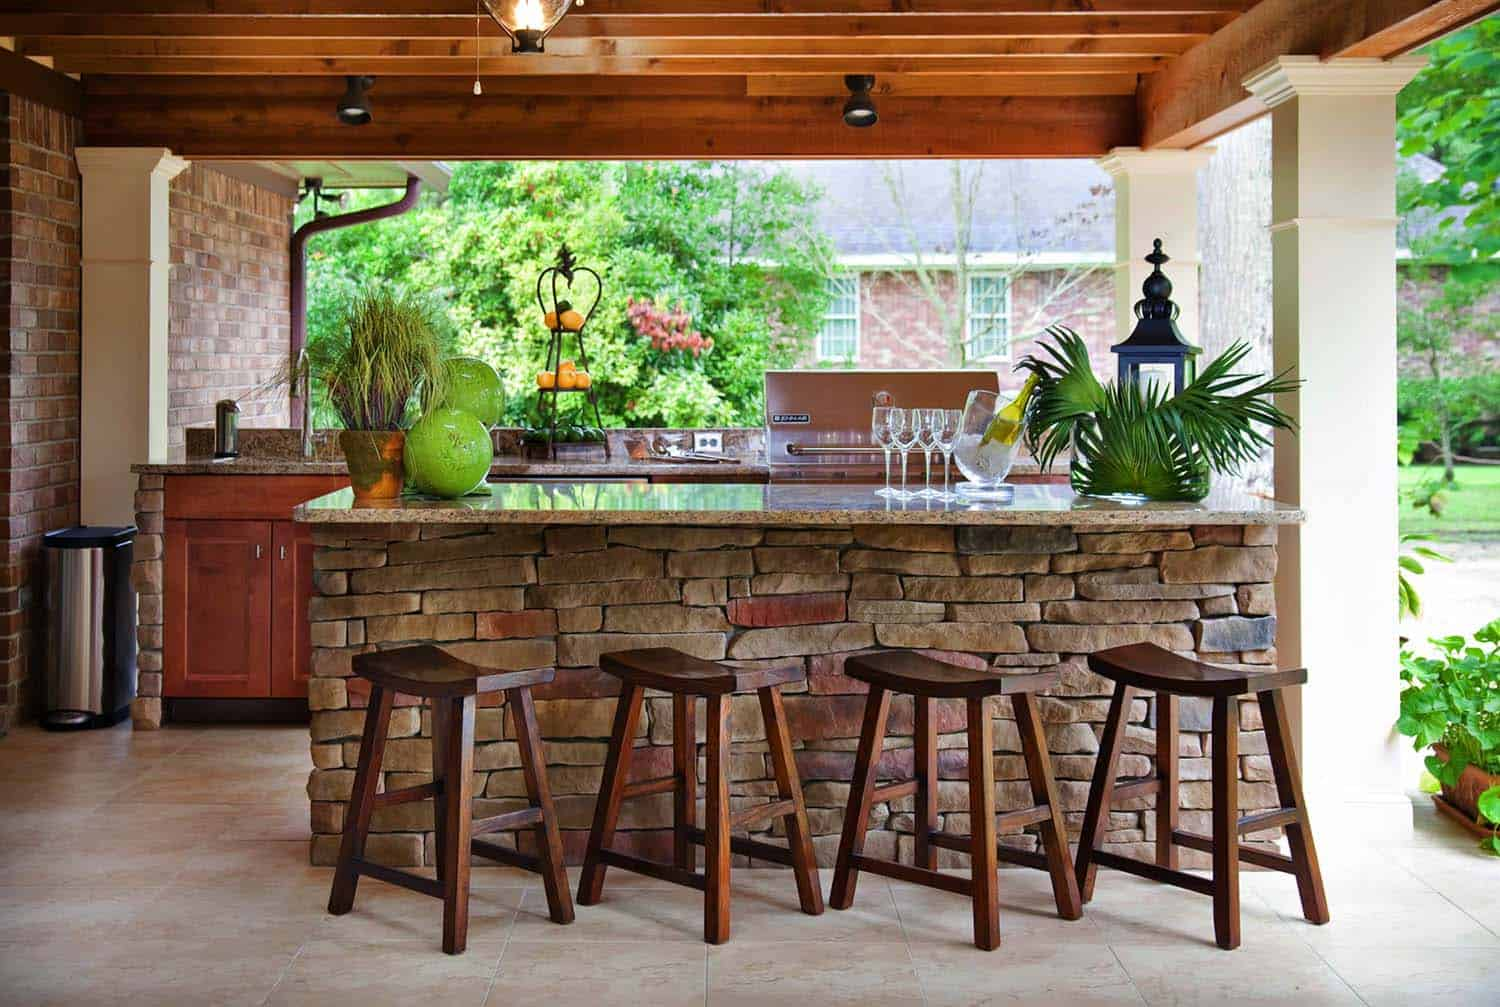 20 spectacular outdoor kitchens with bars for entertaining for Exterior kitchen ideas